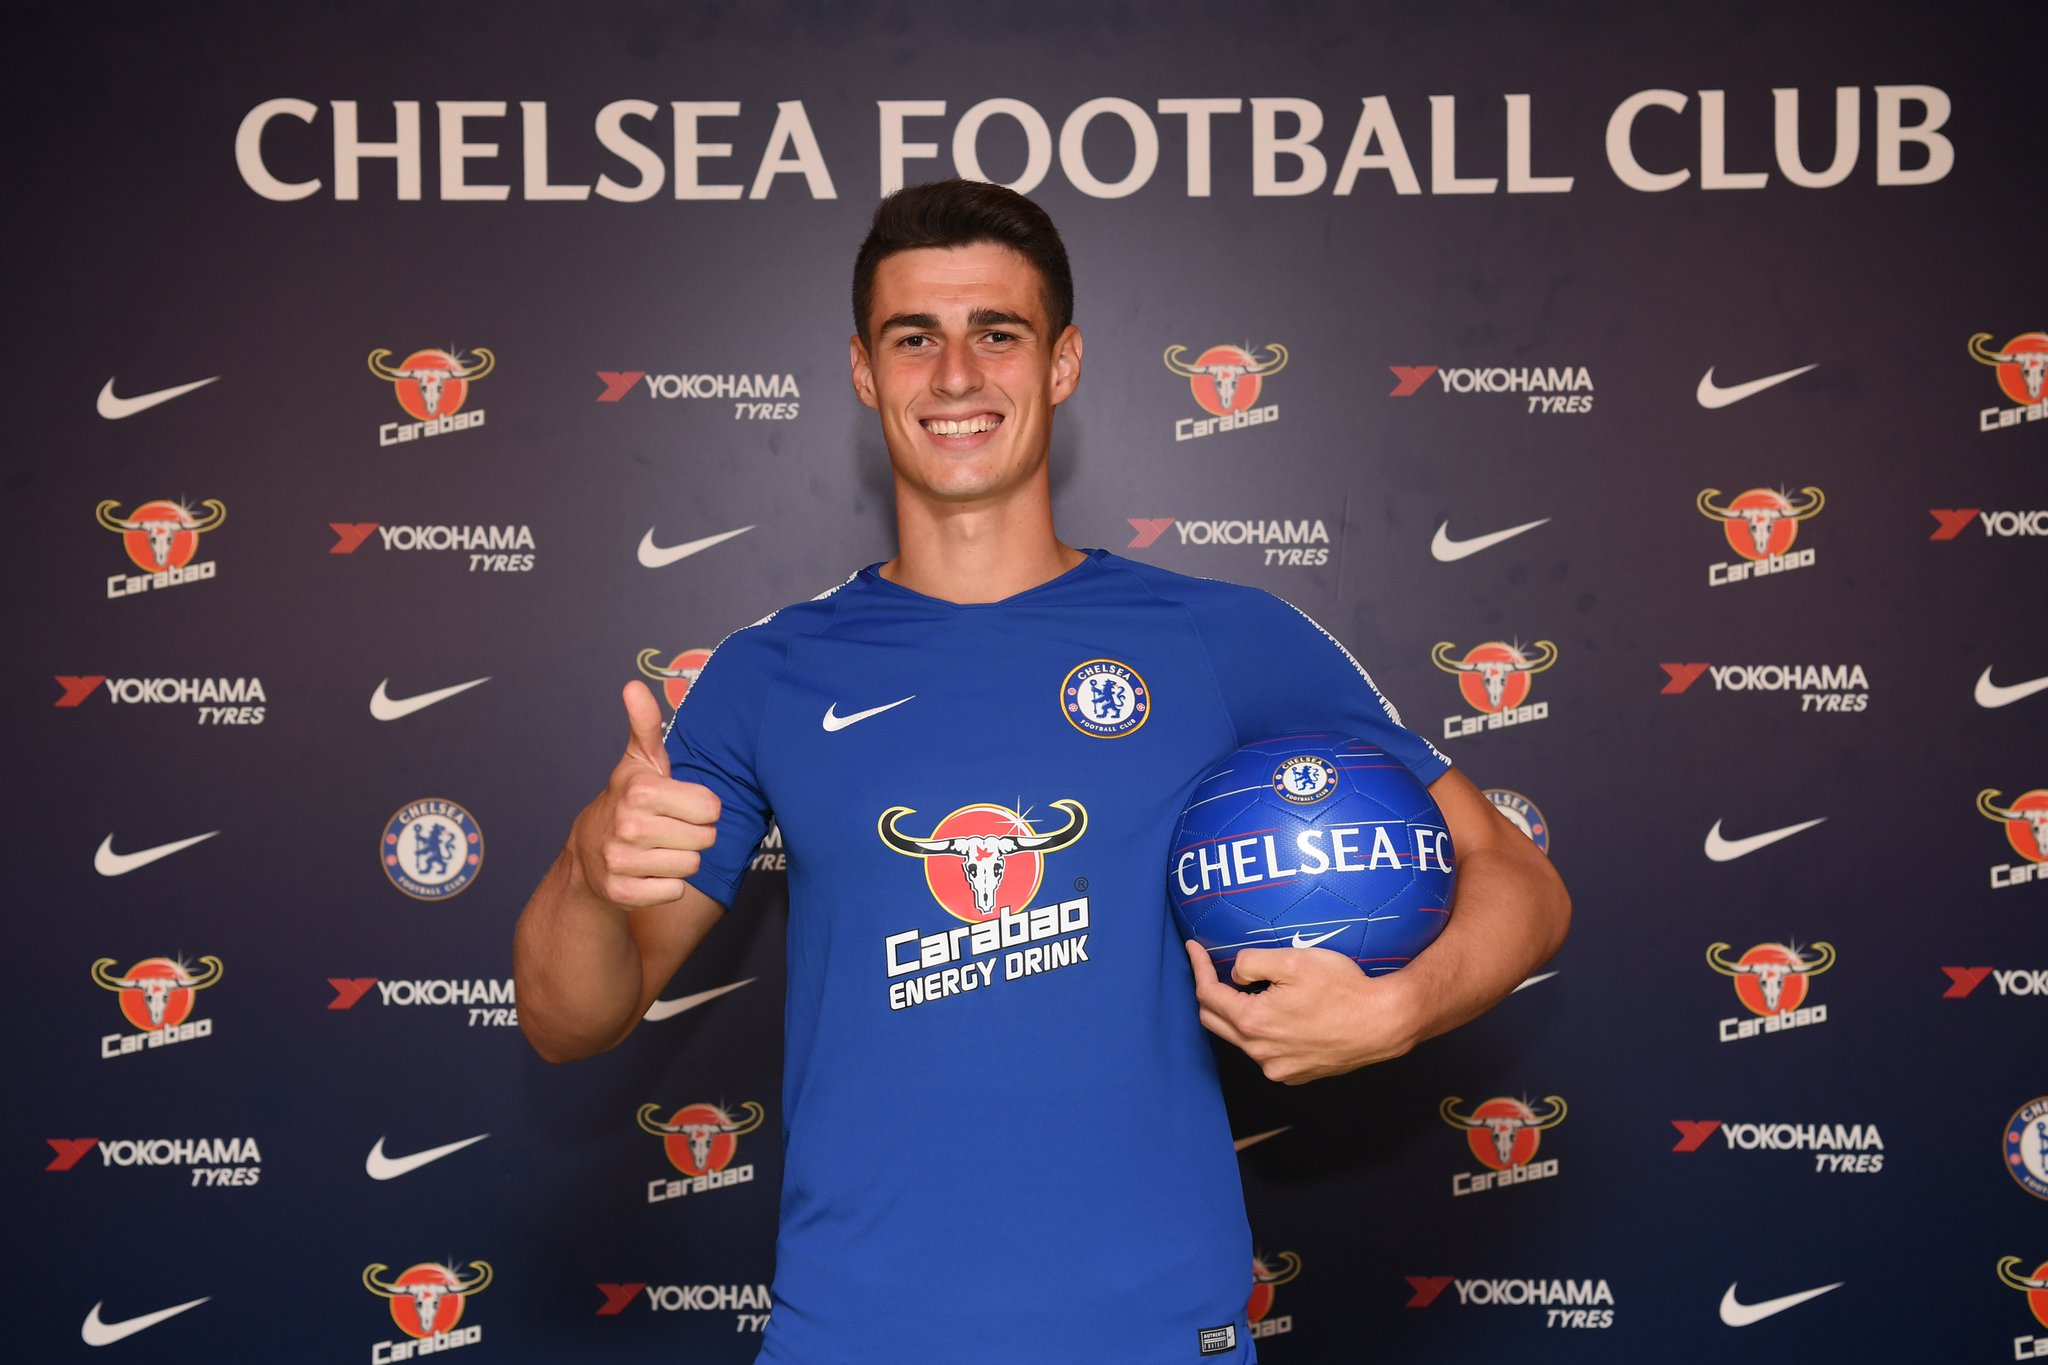 Kepa Arrizabalaga joins Chelsea from Athletic Bilbao for a world-record fee